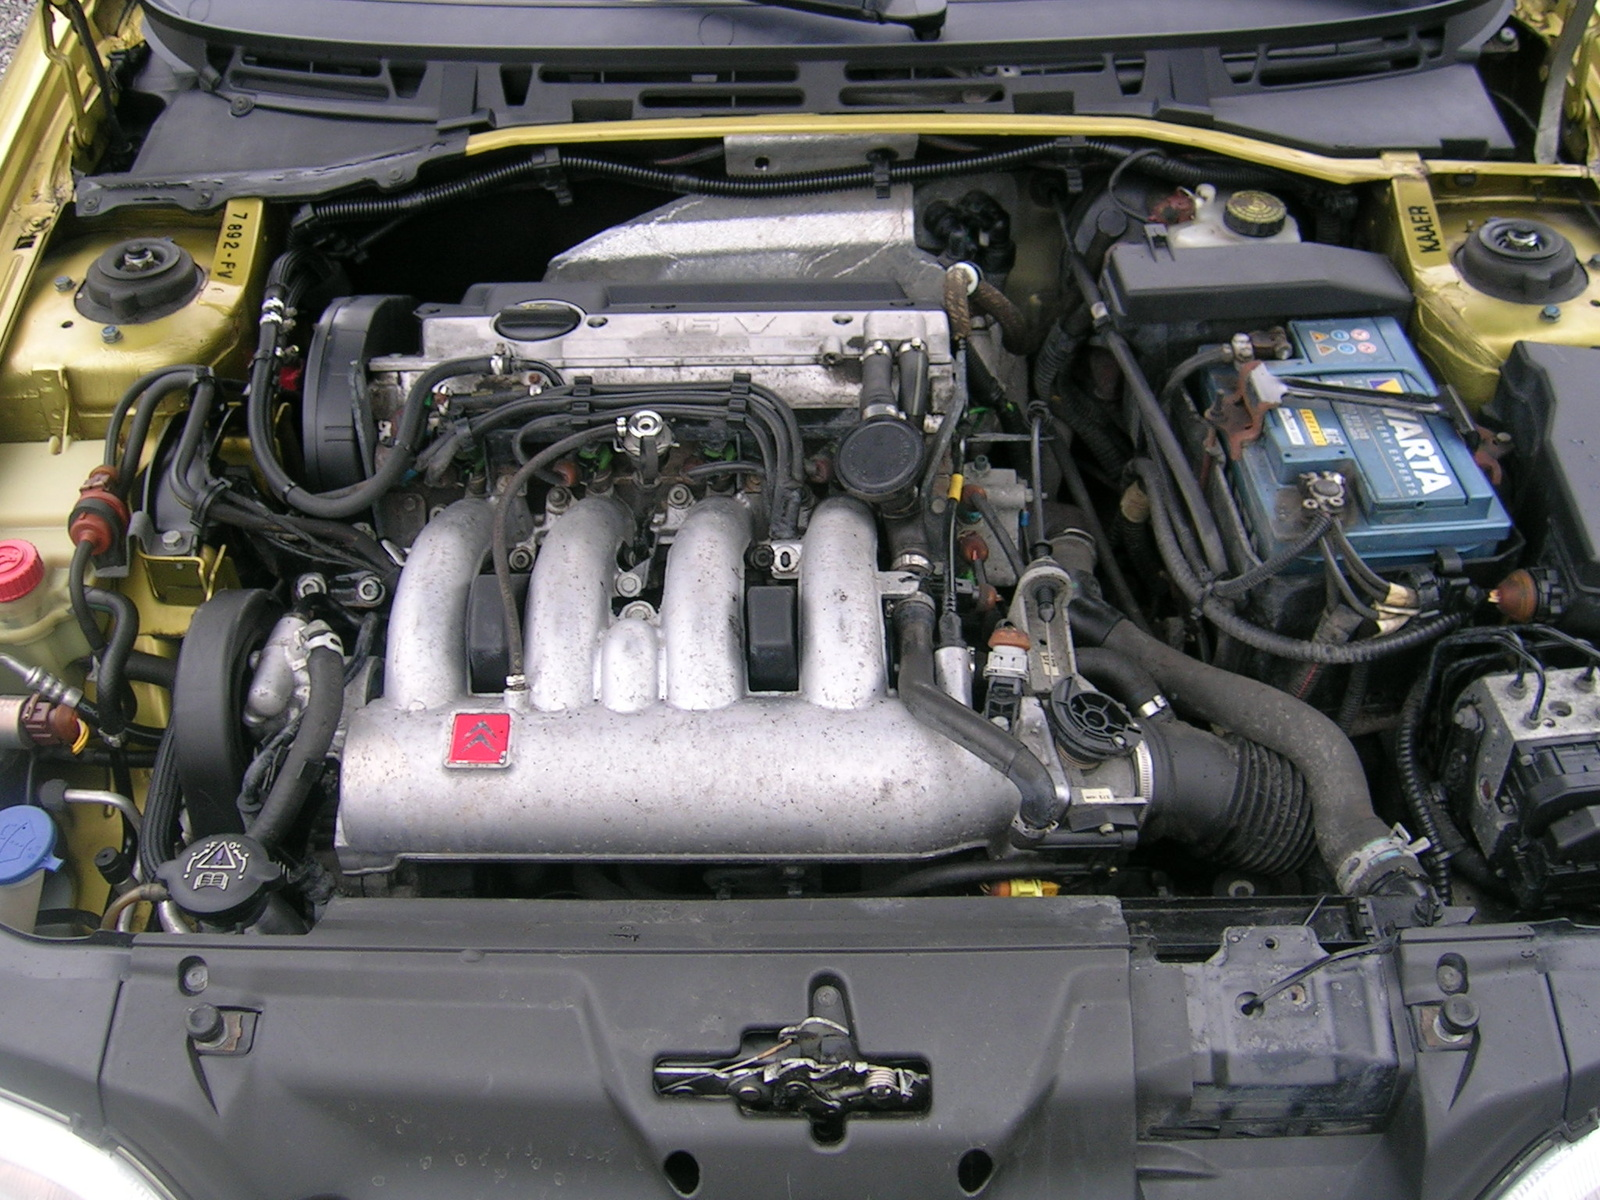 CITROEN XSARA engine